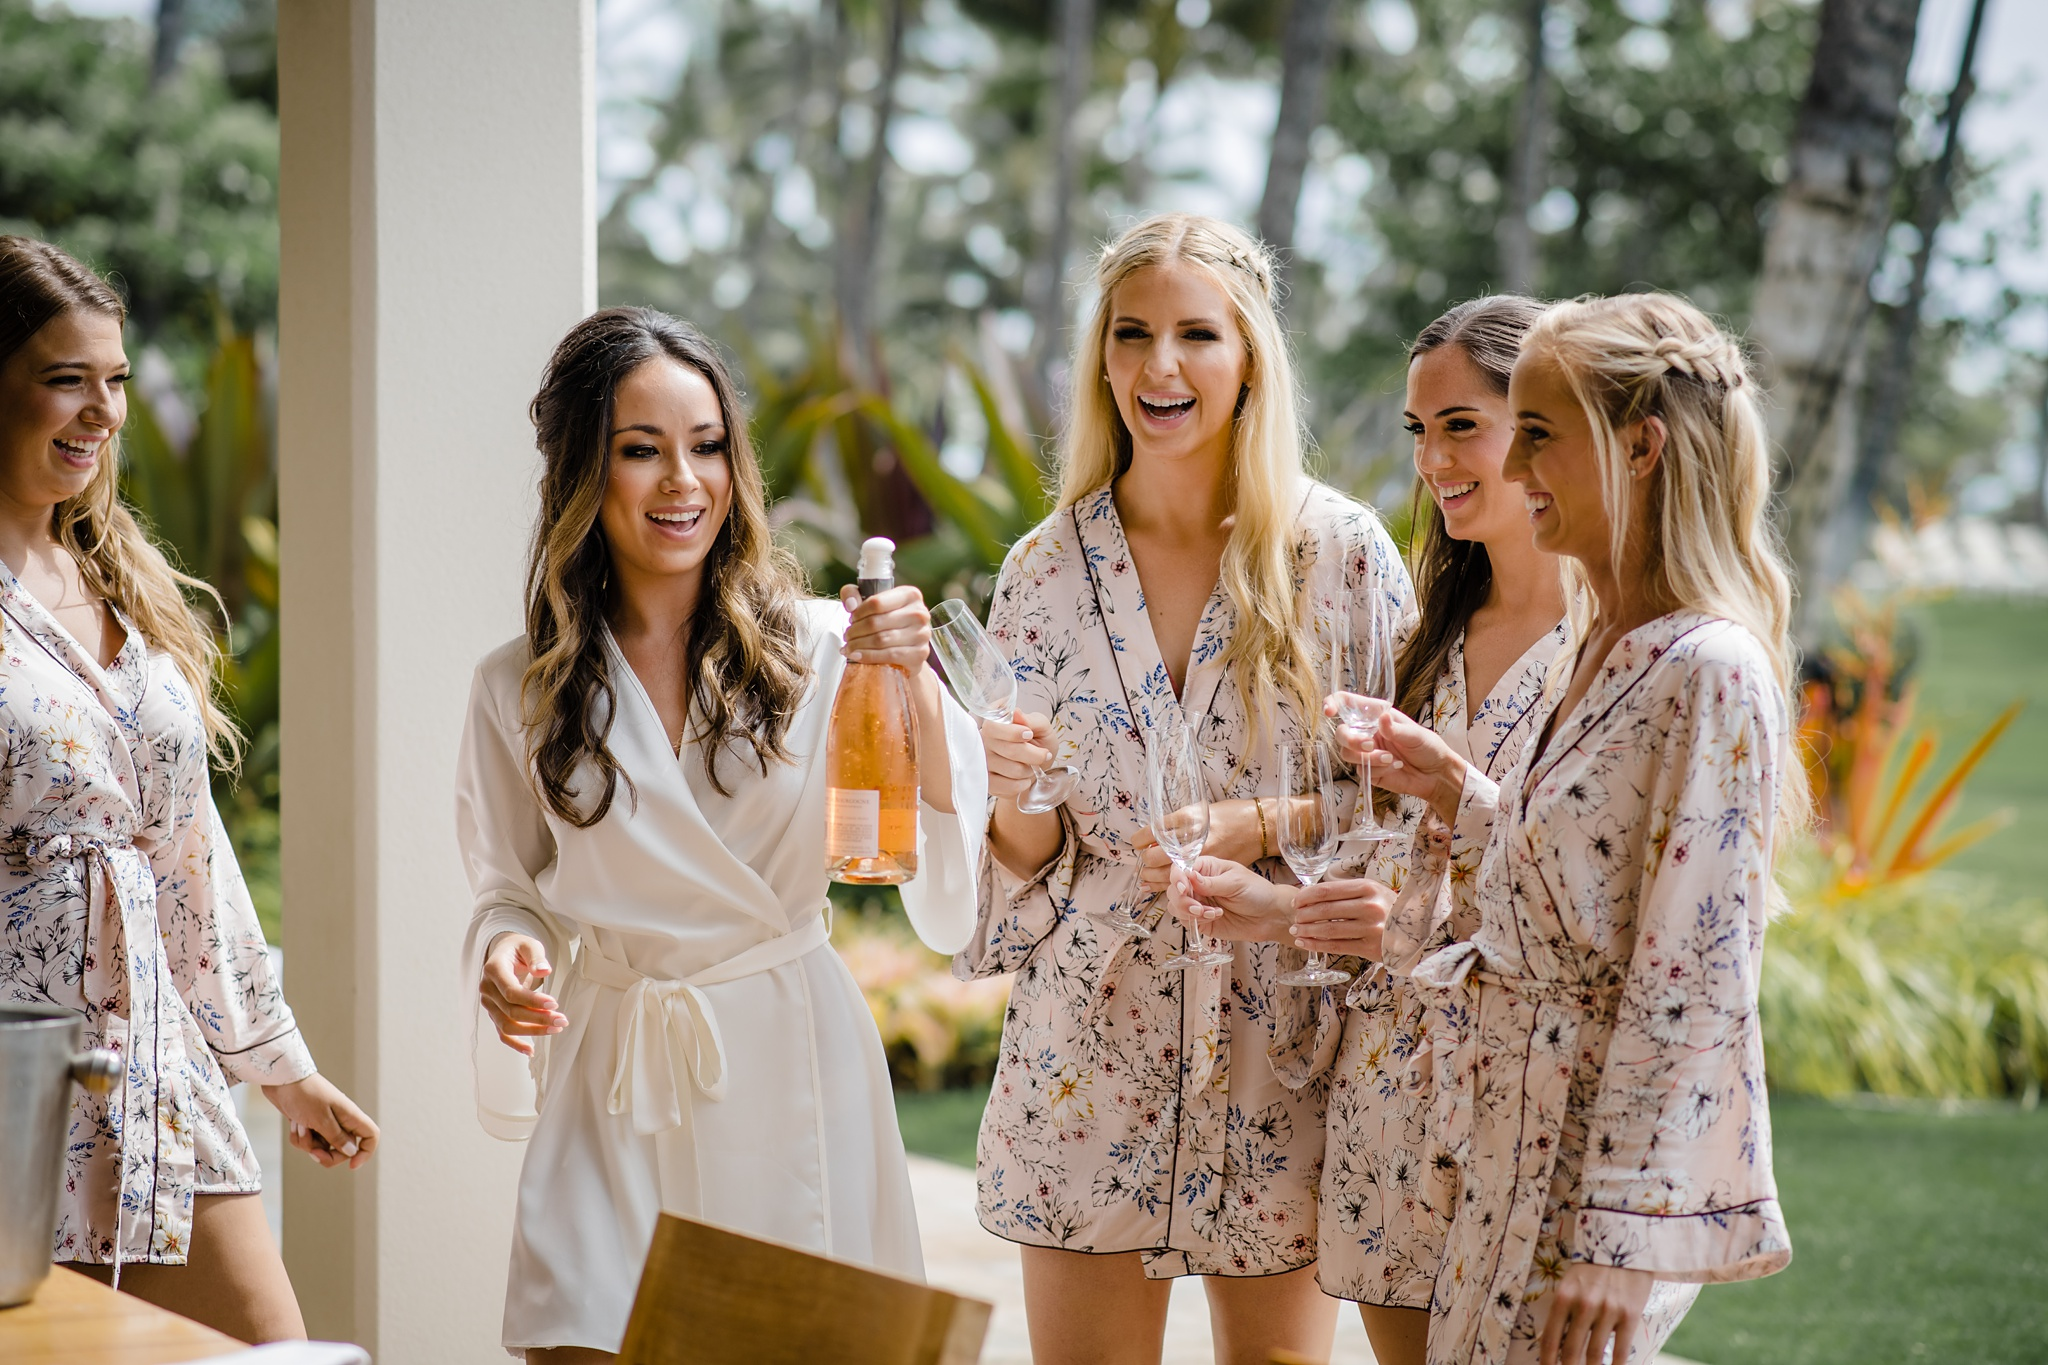 Bride and bridesmaids toasting in celebration for her maui wedding